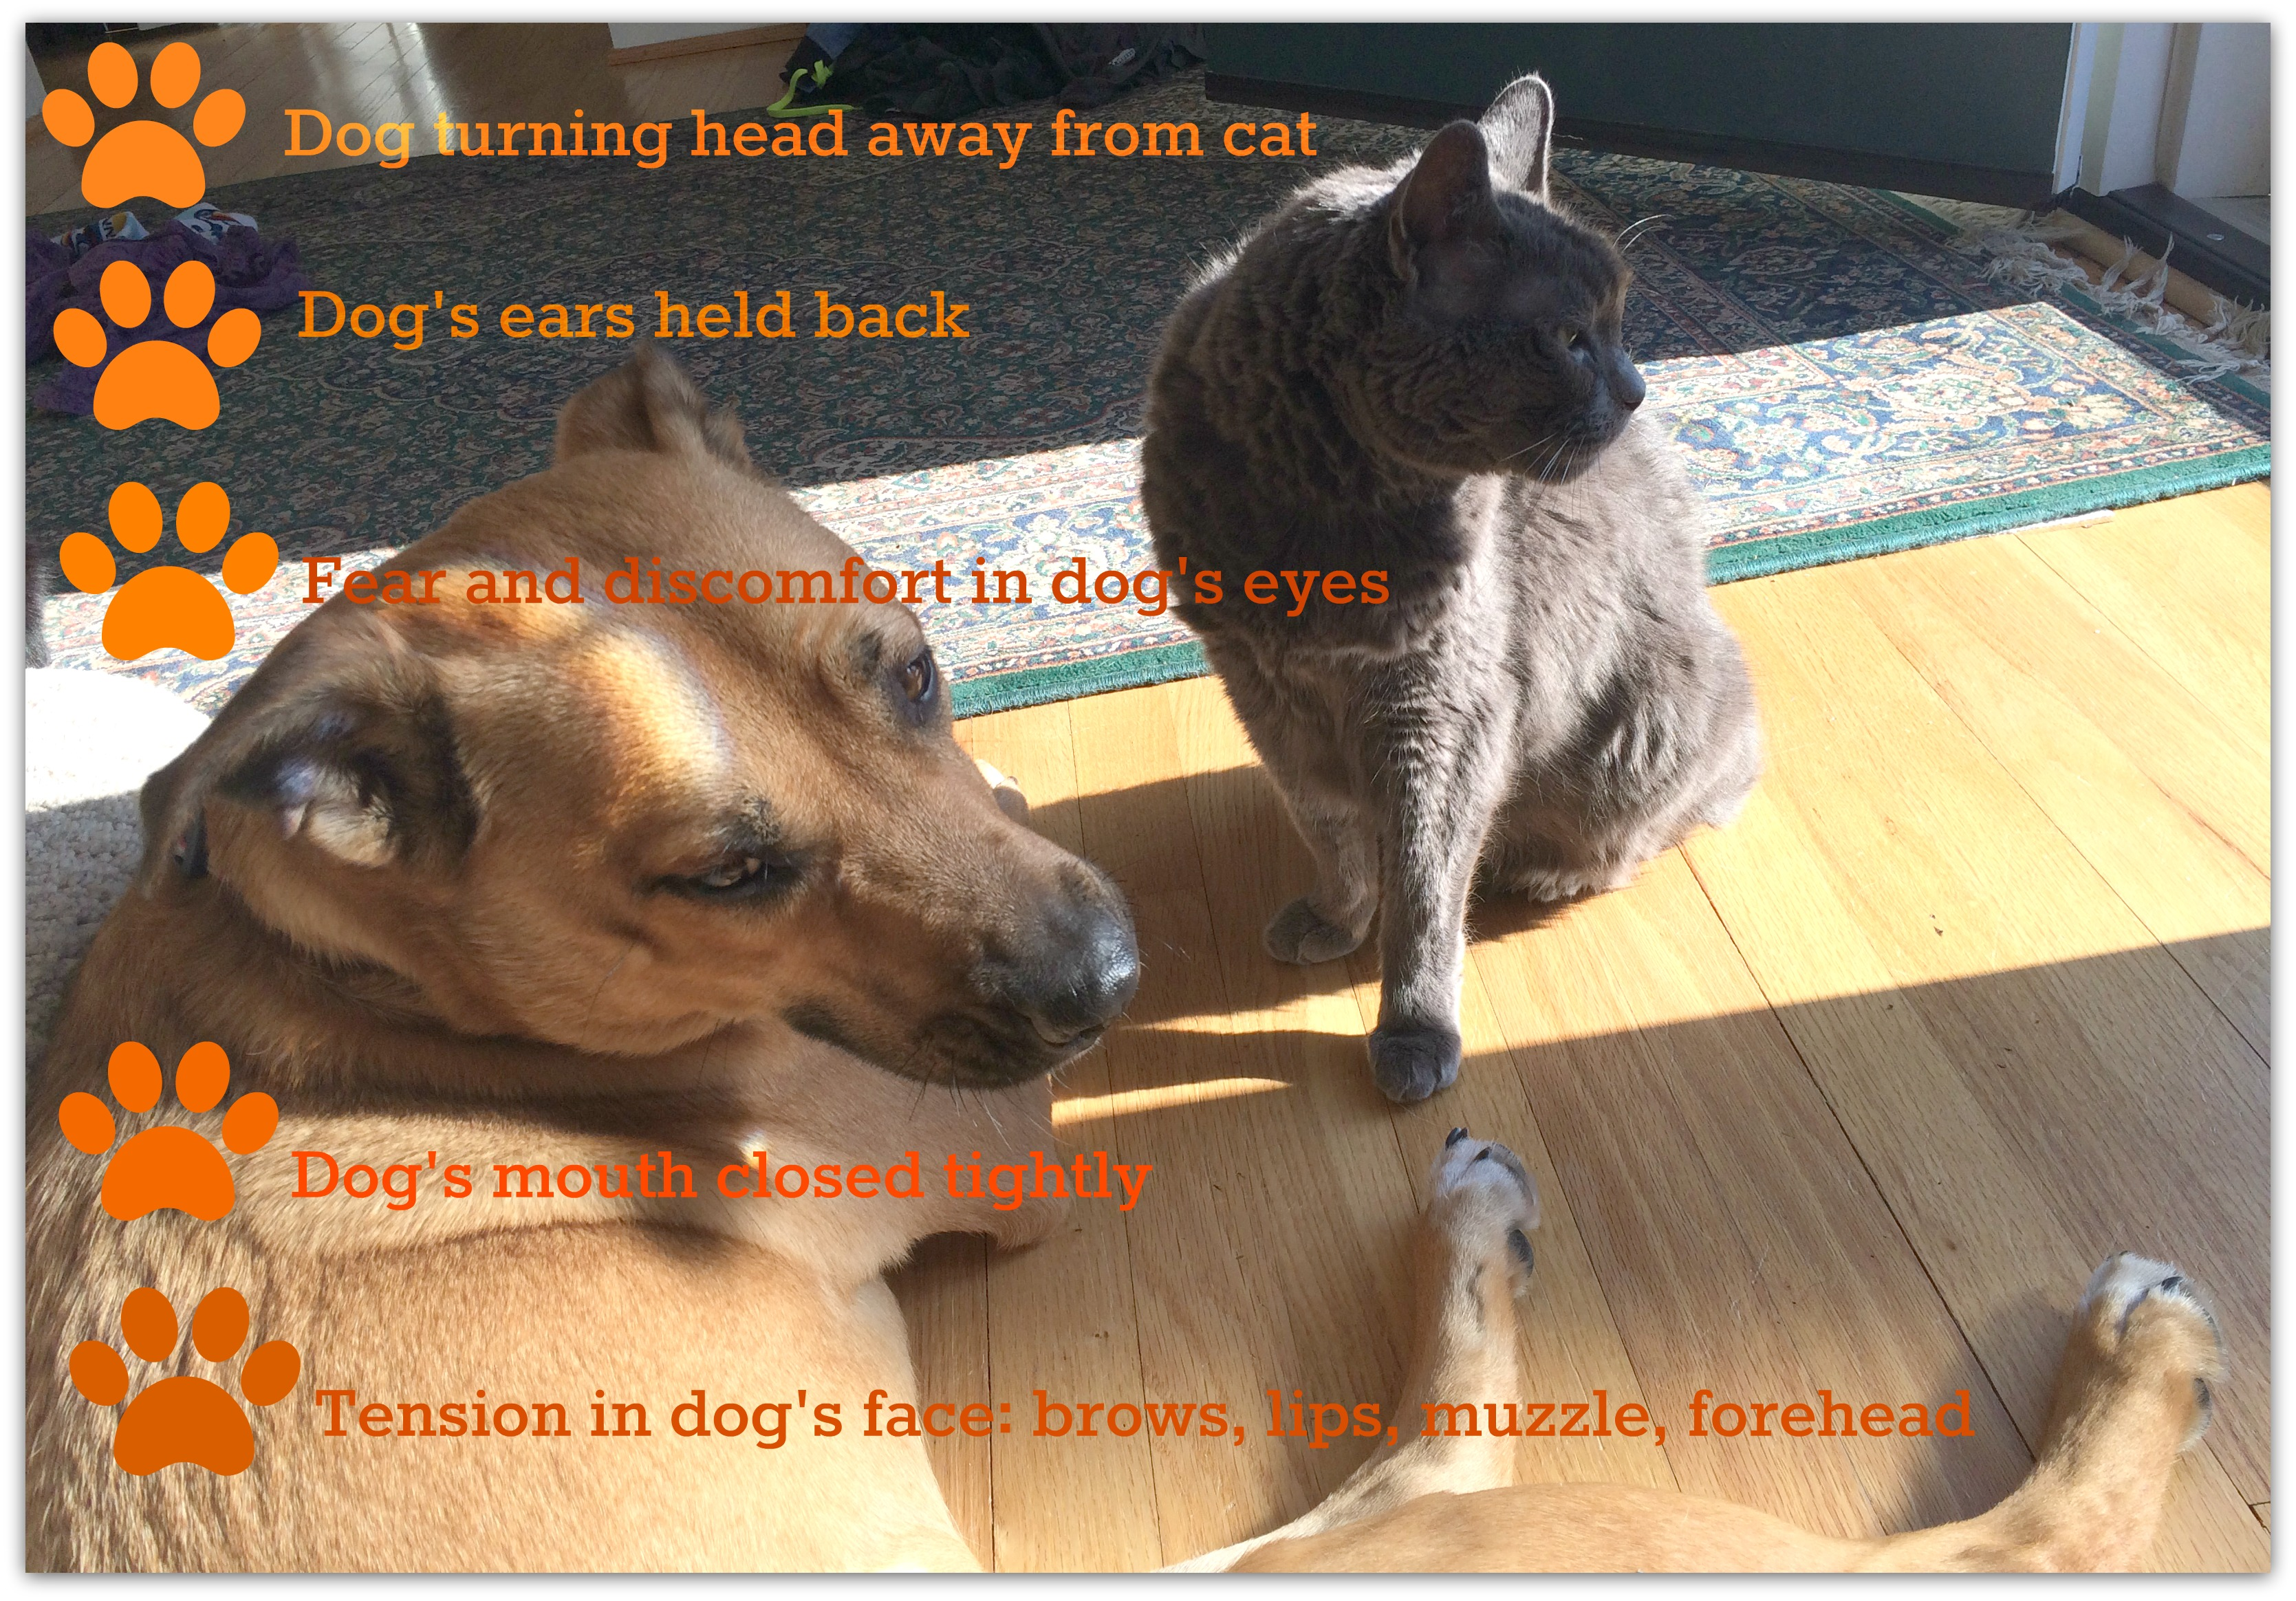 Dog behavior_dogs and cats_dog growling